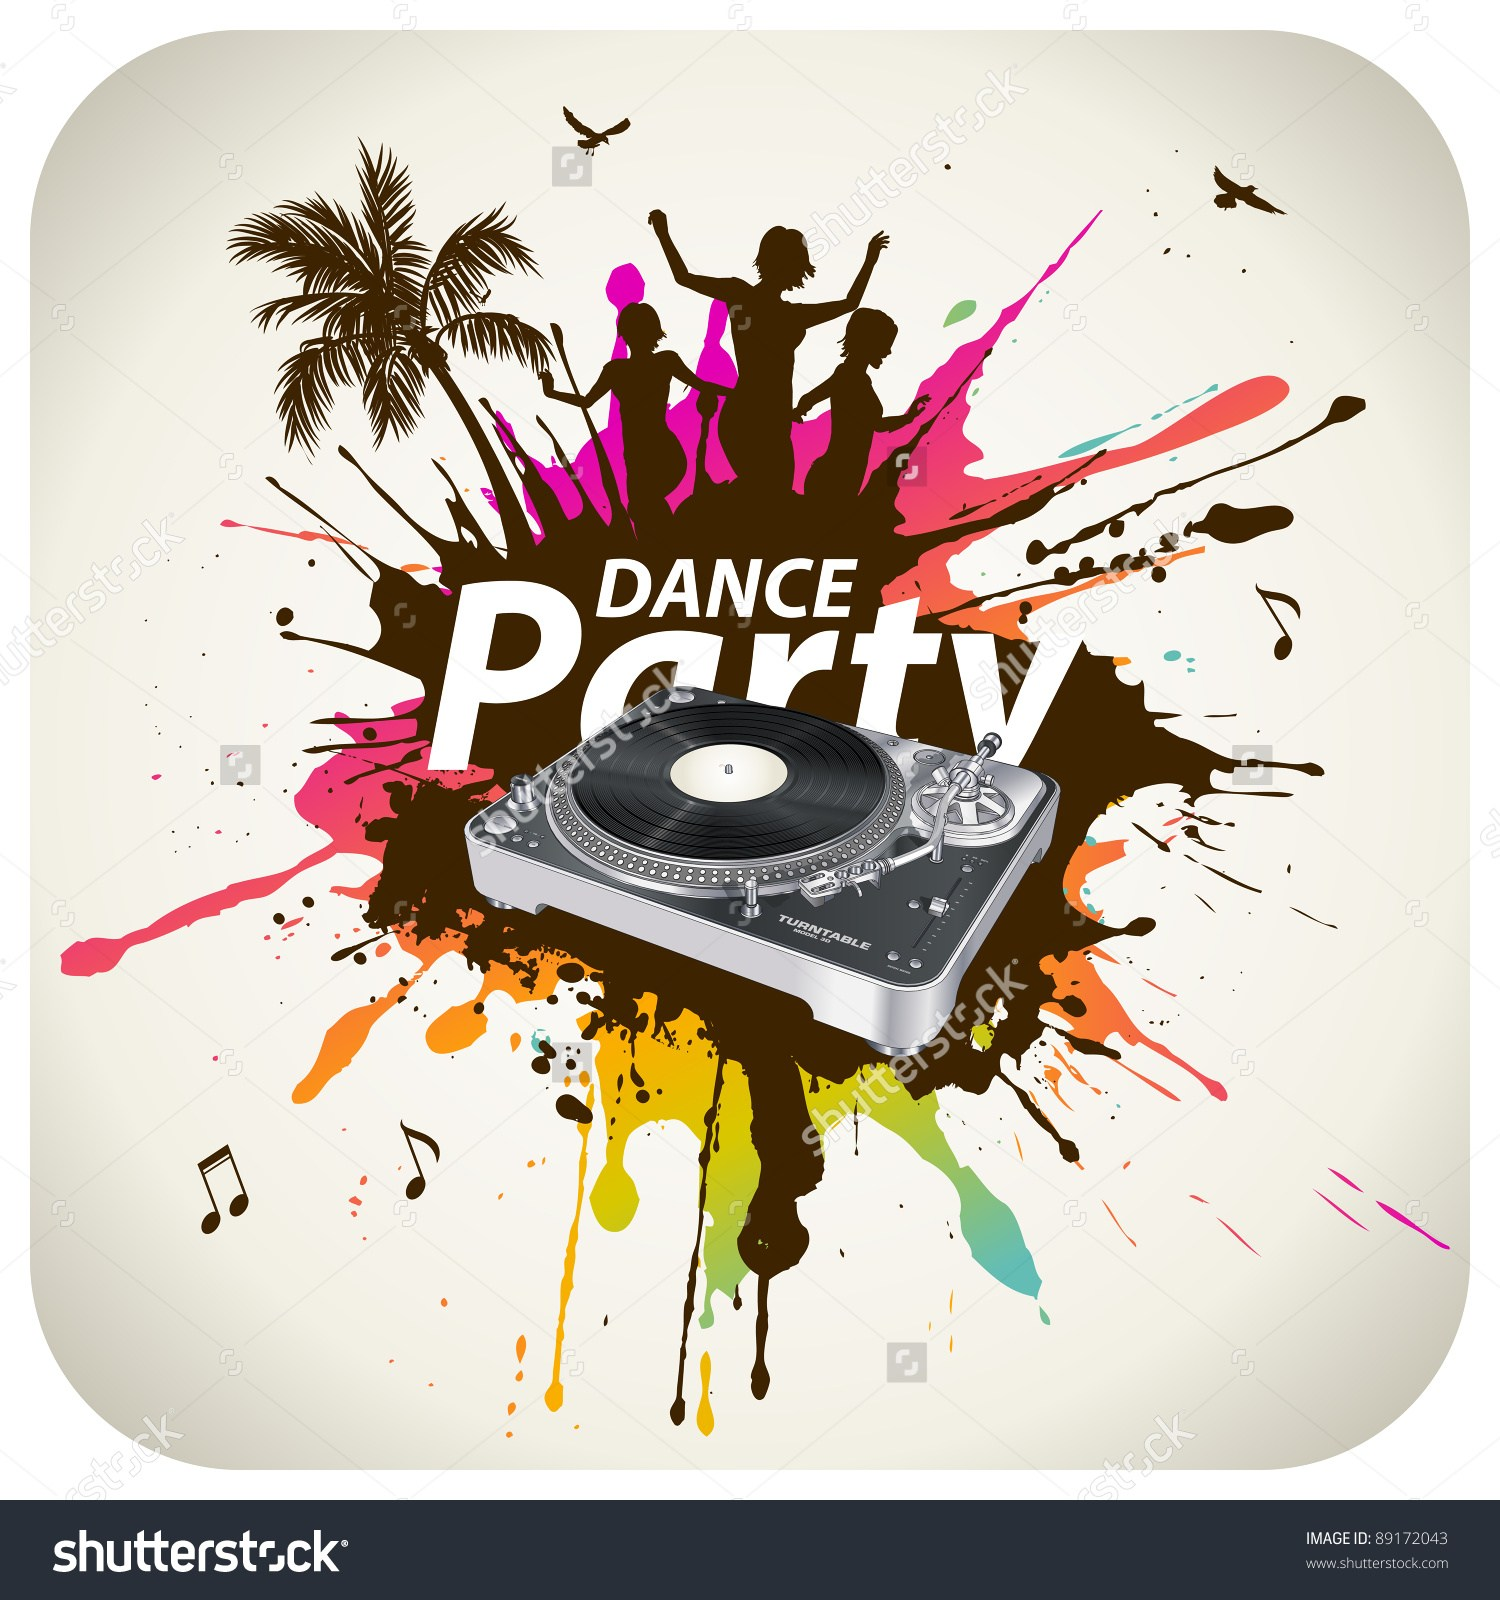 Party dj clipart banner freeuse stock Dj party clipart 6 » Clipart Portal banner freeuse stock